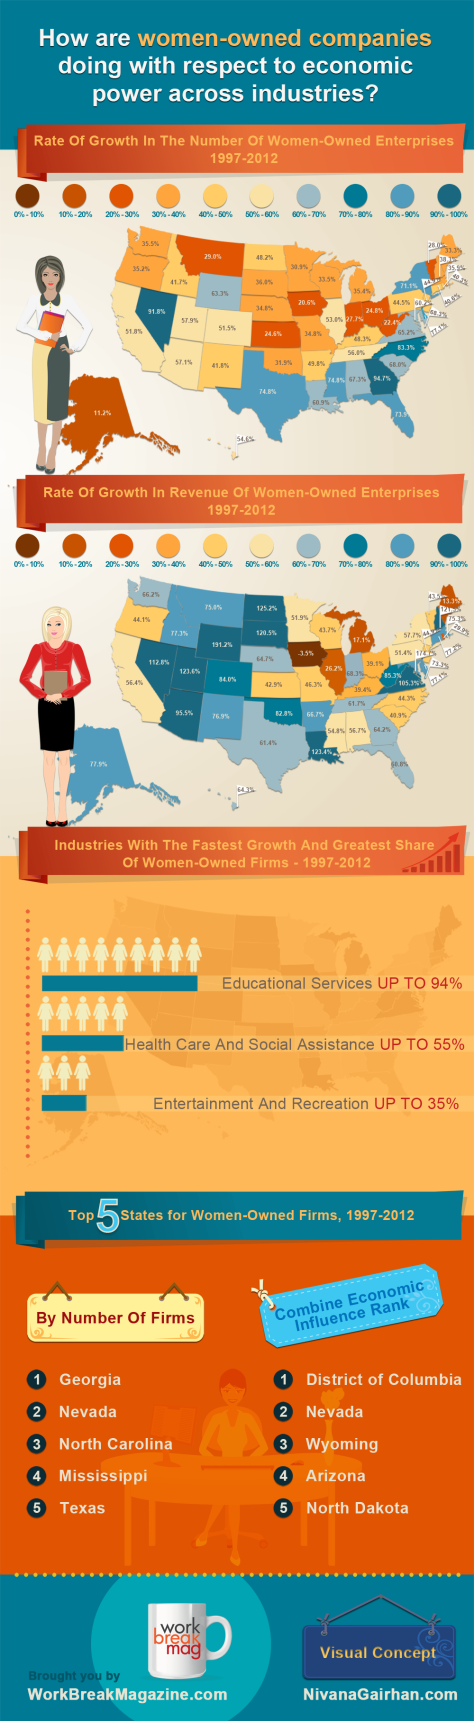 how-are-womenowned-companies-doing-with-respect-to-economic-power-across-industries_5257fcdbf1d2a